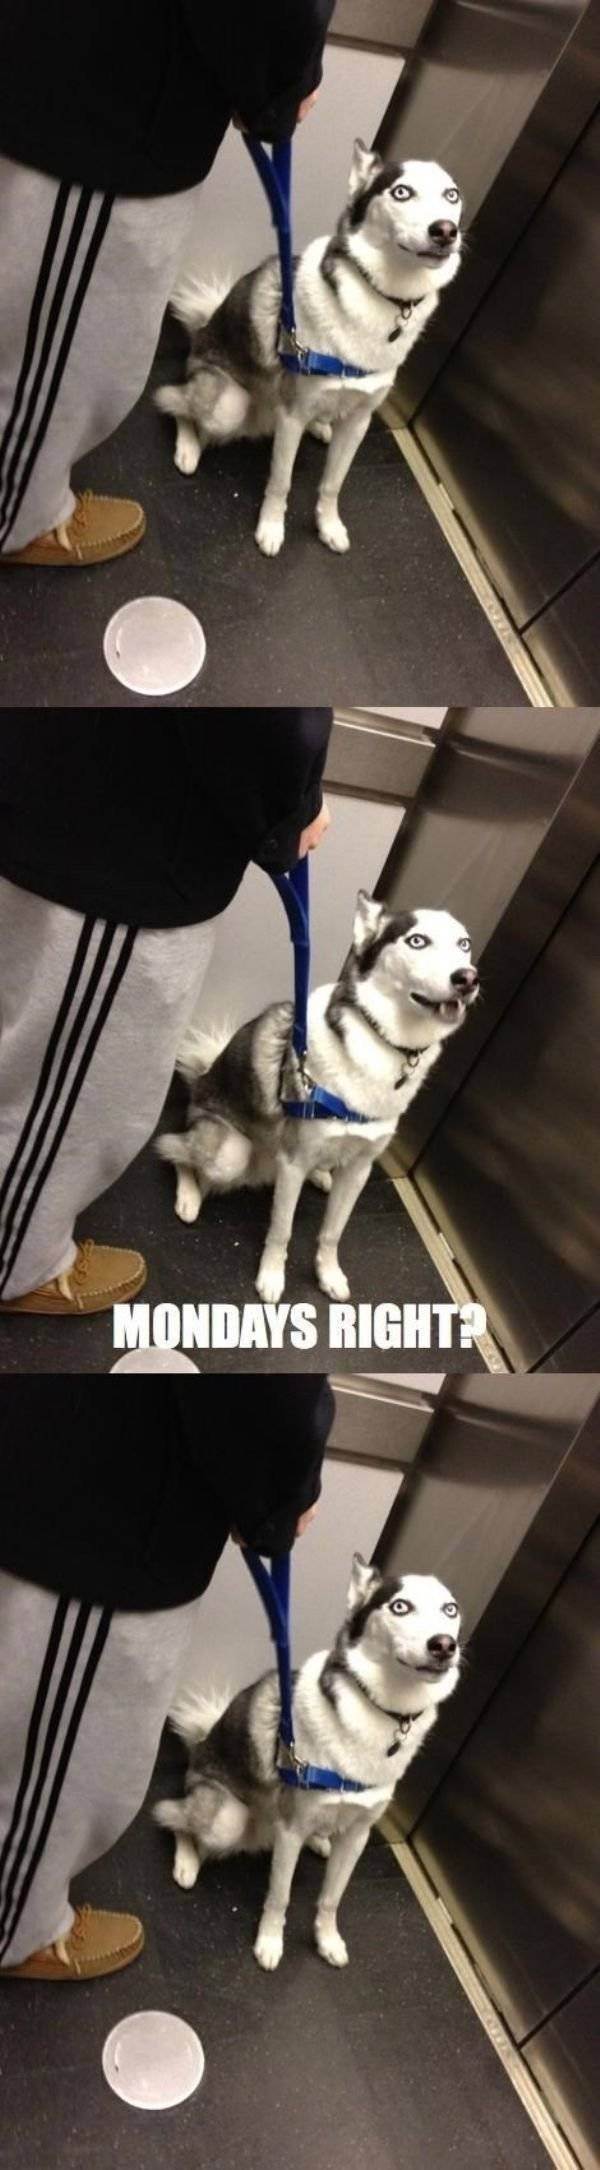 work meme about elevator small talk with a dog